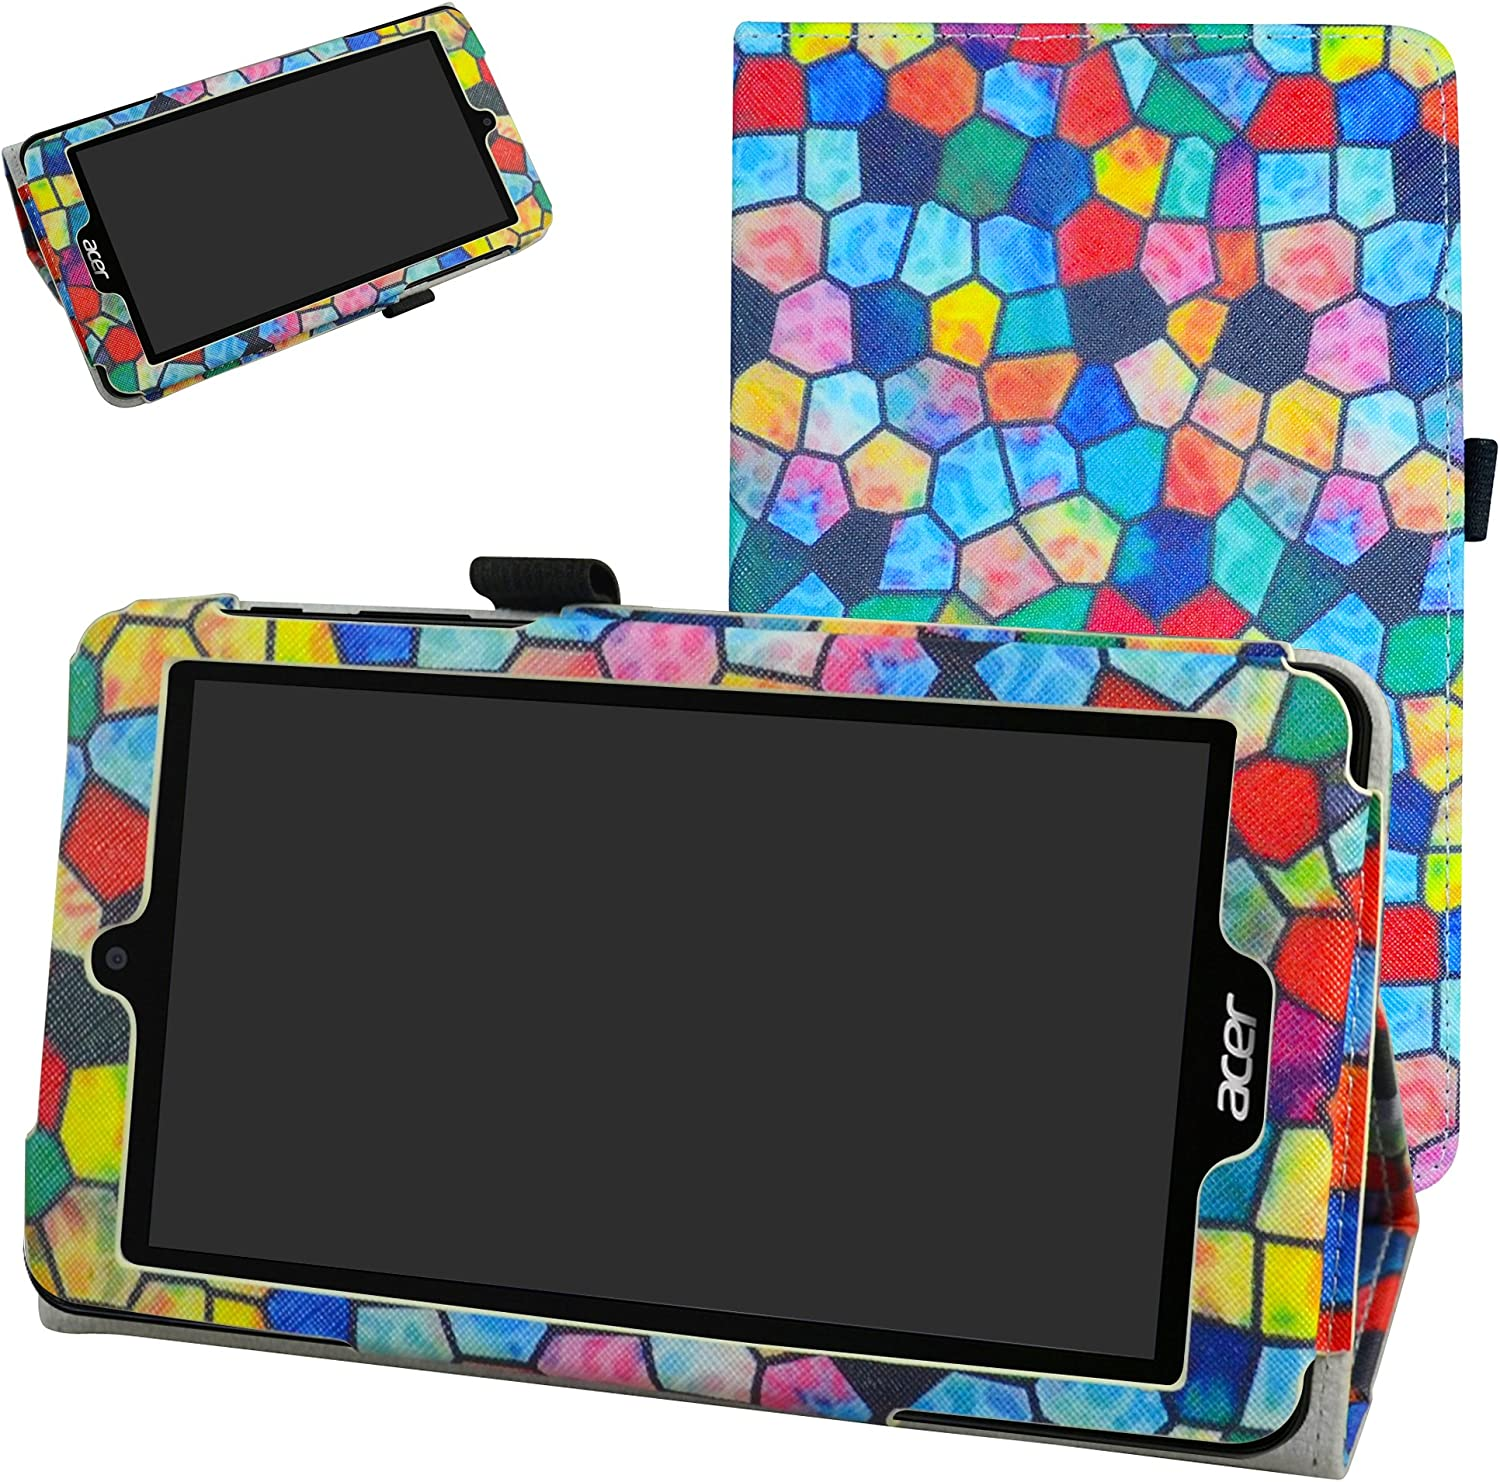 """Acer B1-780 / B1-790 Case,Mama Mouth PU Leather Folio 2-Folding Stand Cover with Stylus Holder for 7"""" Acer Iconia One 7 B1-780 / Iconia One 7 B1-790 Android Tablet,Stained Glass"""